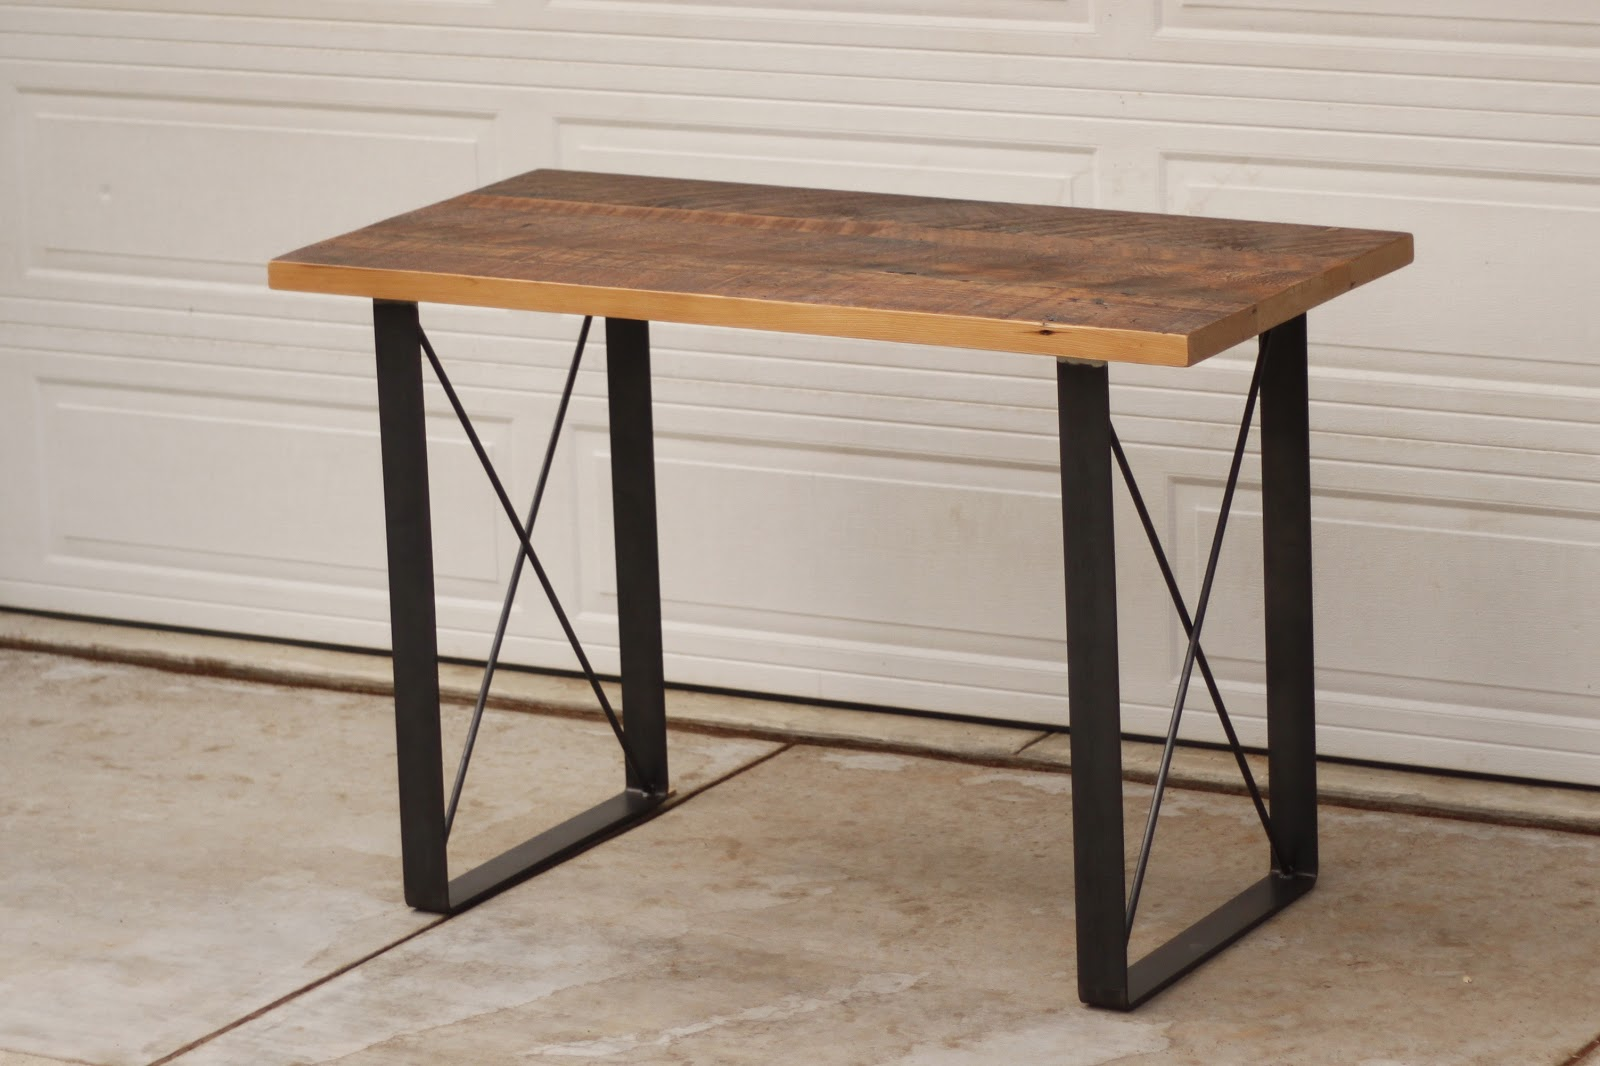 "-up desk is 40"" high - as opposed to the standard 30"" height. The top ..."